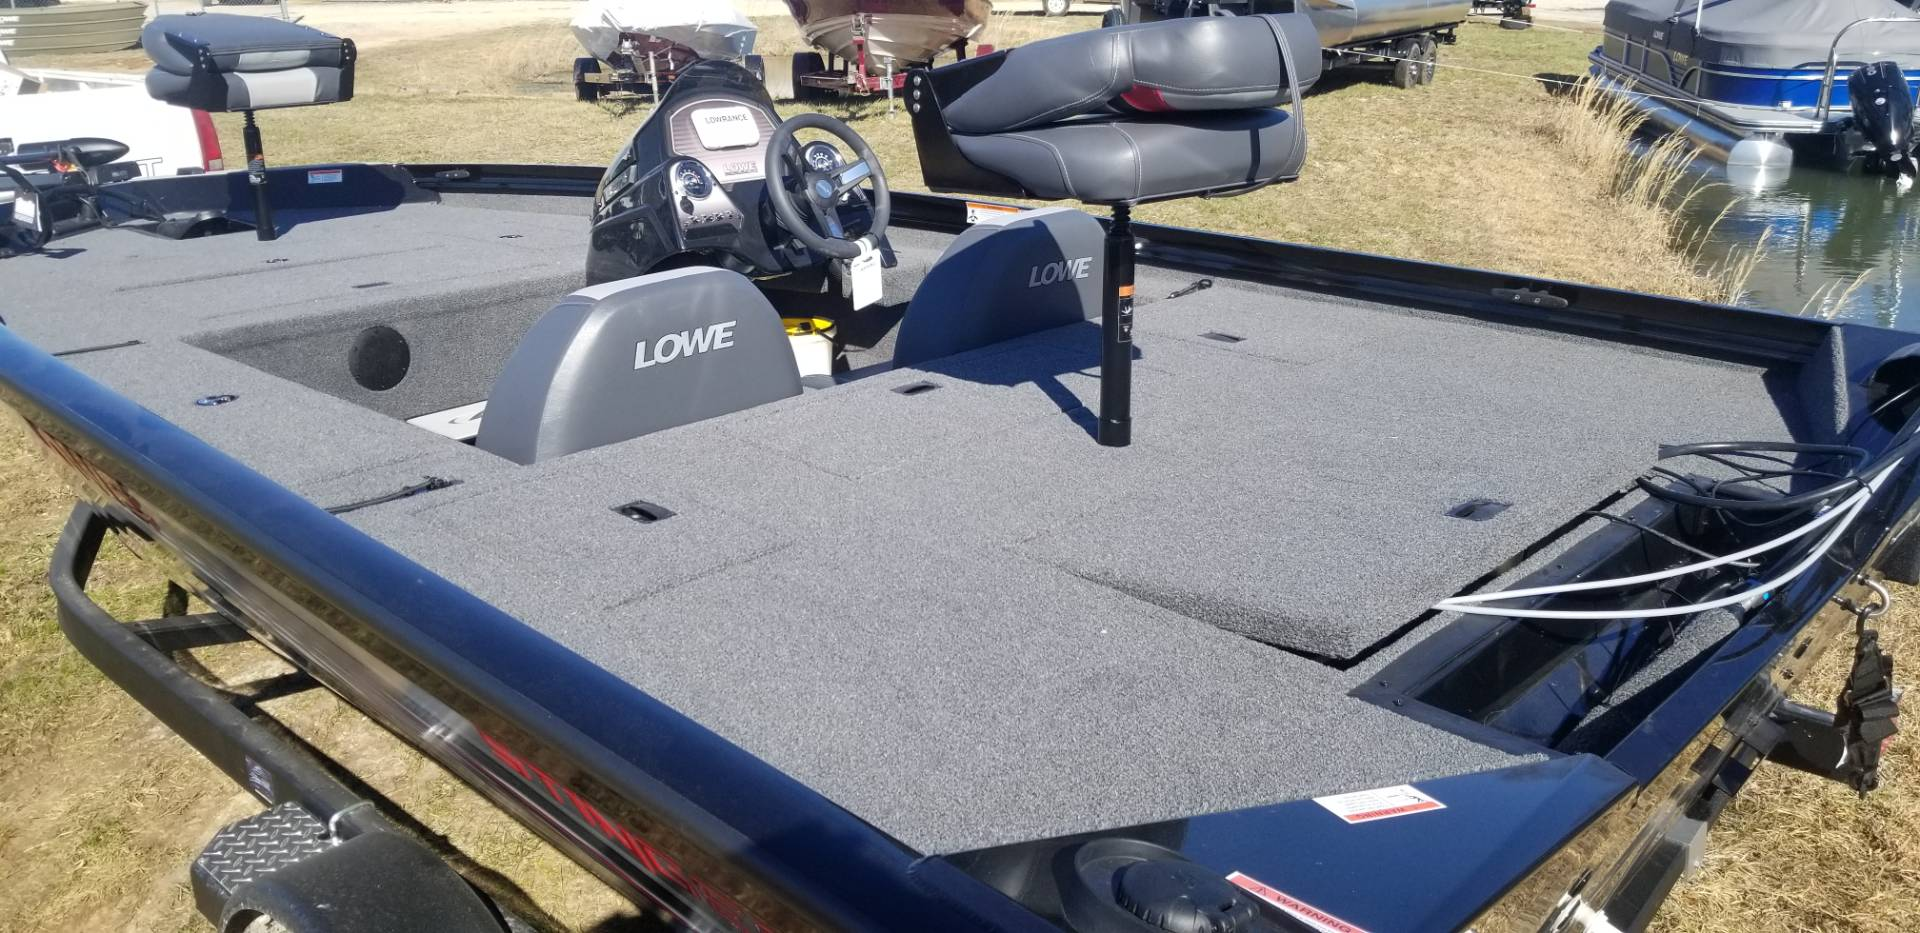 2019 Lowe STINGER 178 W/ MERCURY 90H 4S & TRAILER in West Plains, Missouri - Photo 12